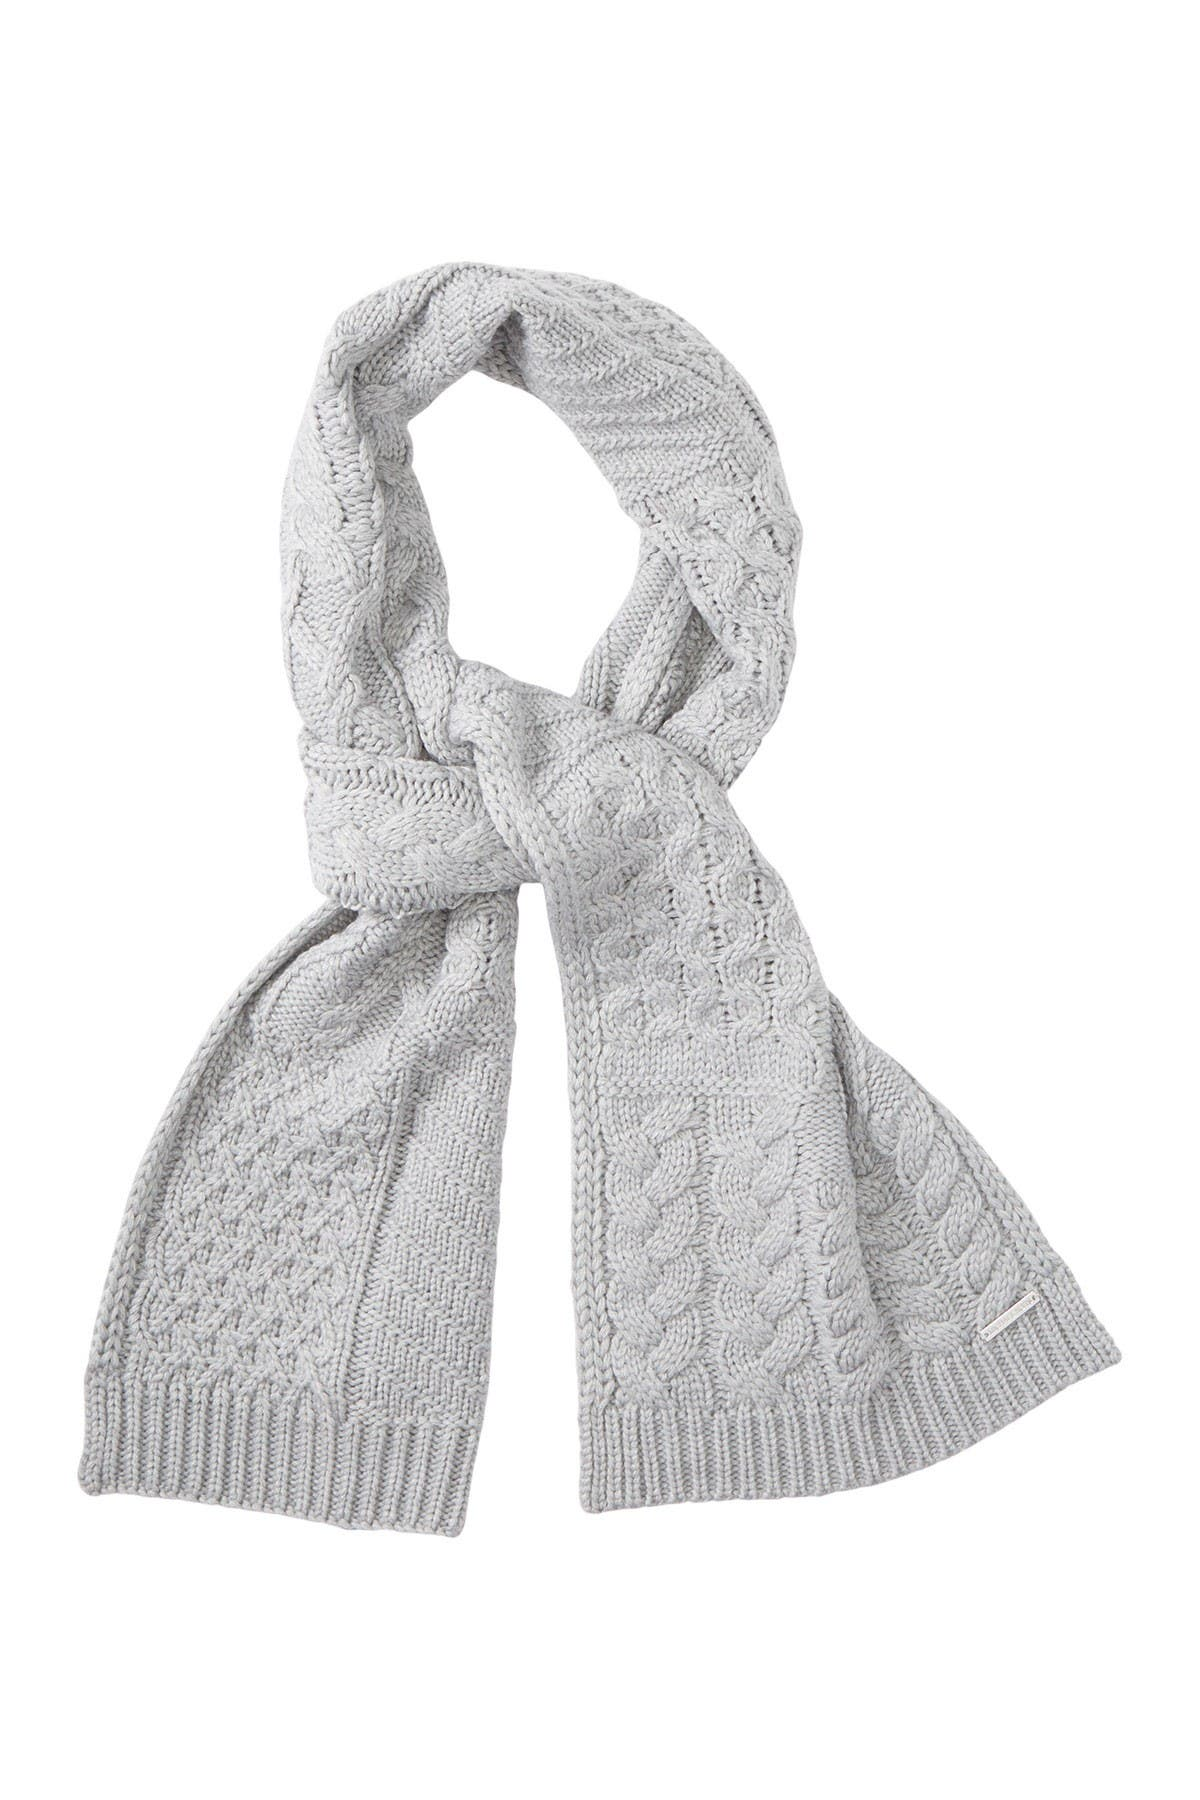 Image of Michael Kors Patchwork Cable Muffler